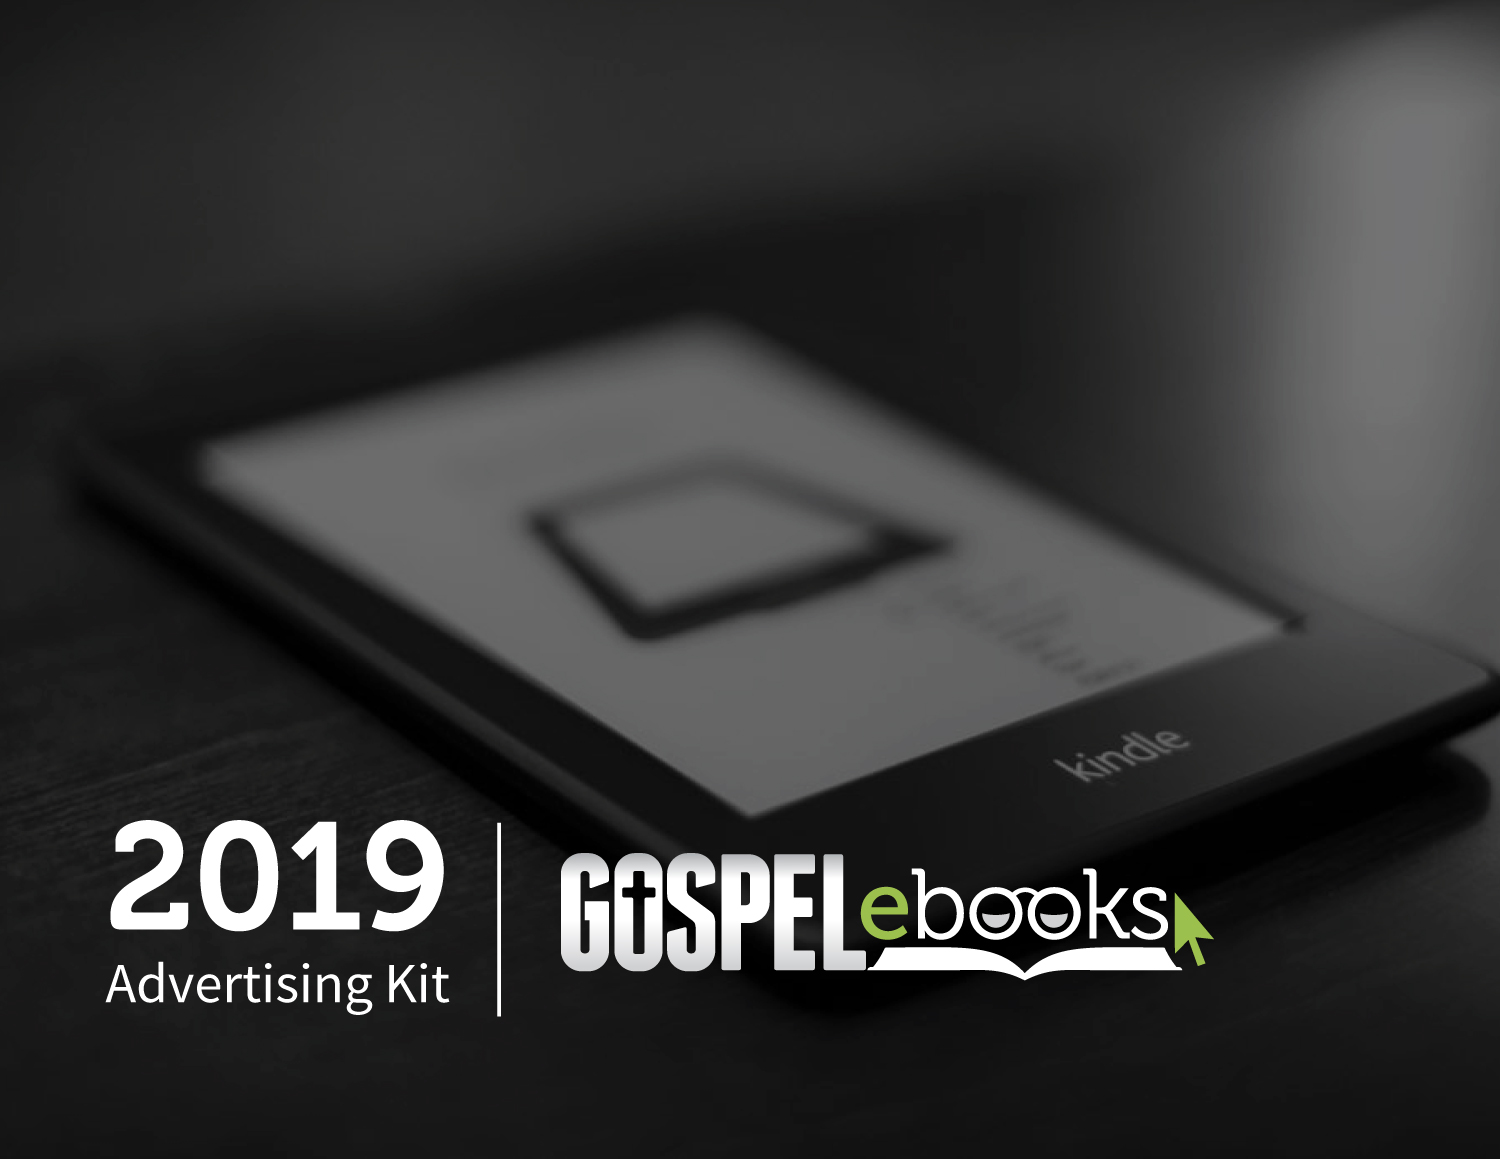 Gospel eBooks 2019 Advertising Kit